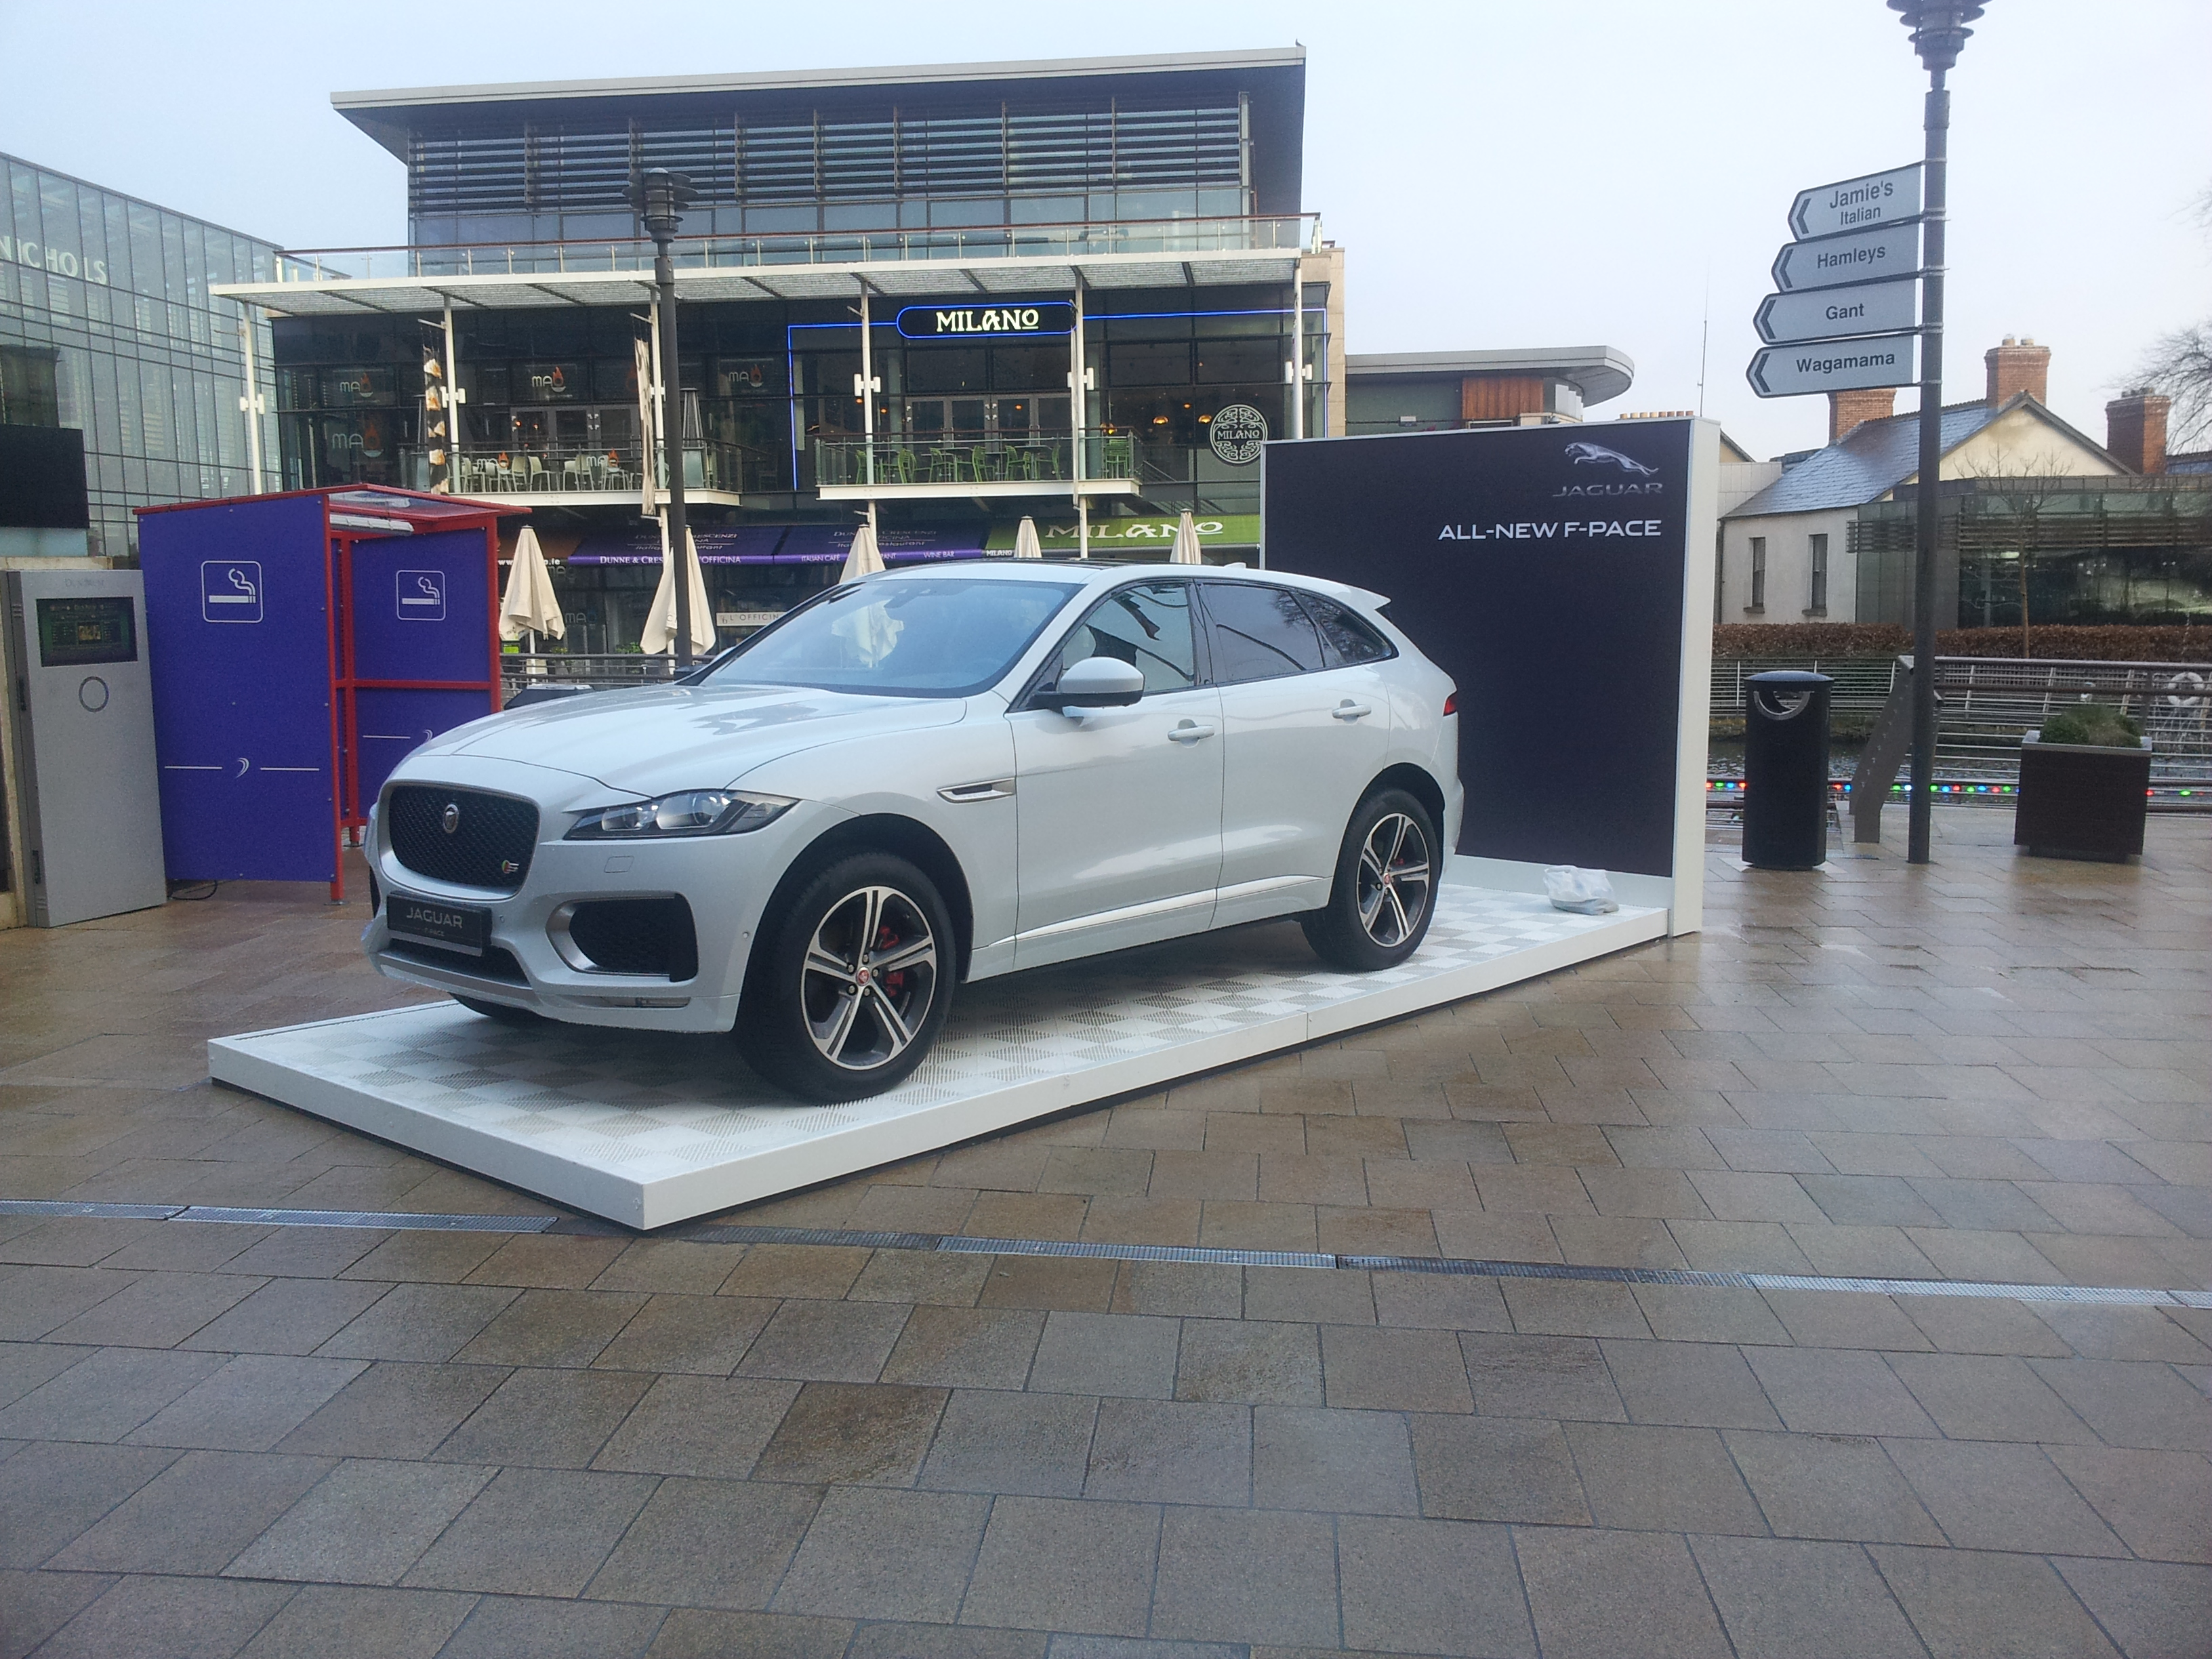 New Jaguar F-Pace at Dundrum Town Centre in association with Automotive Team